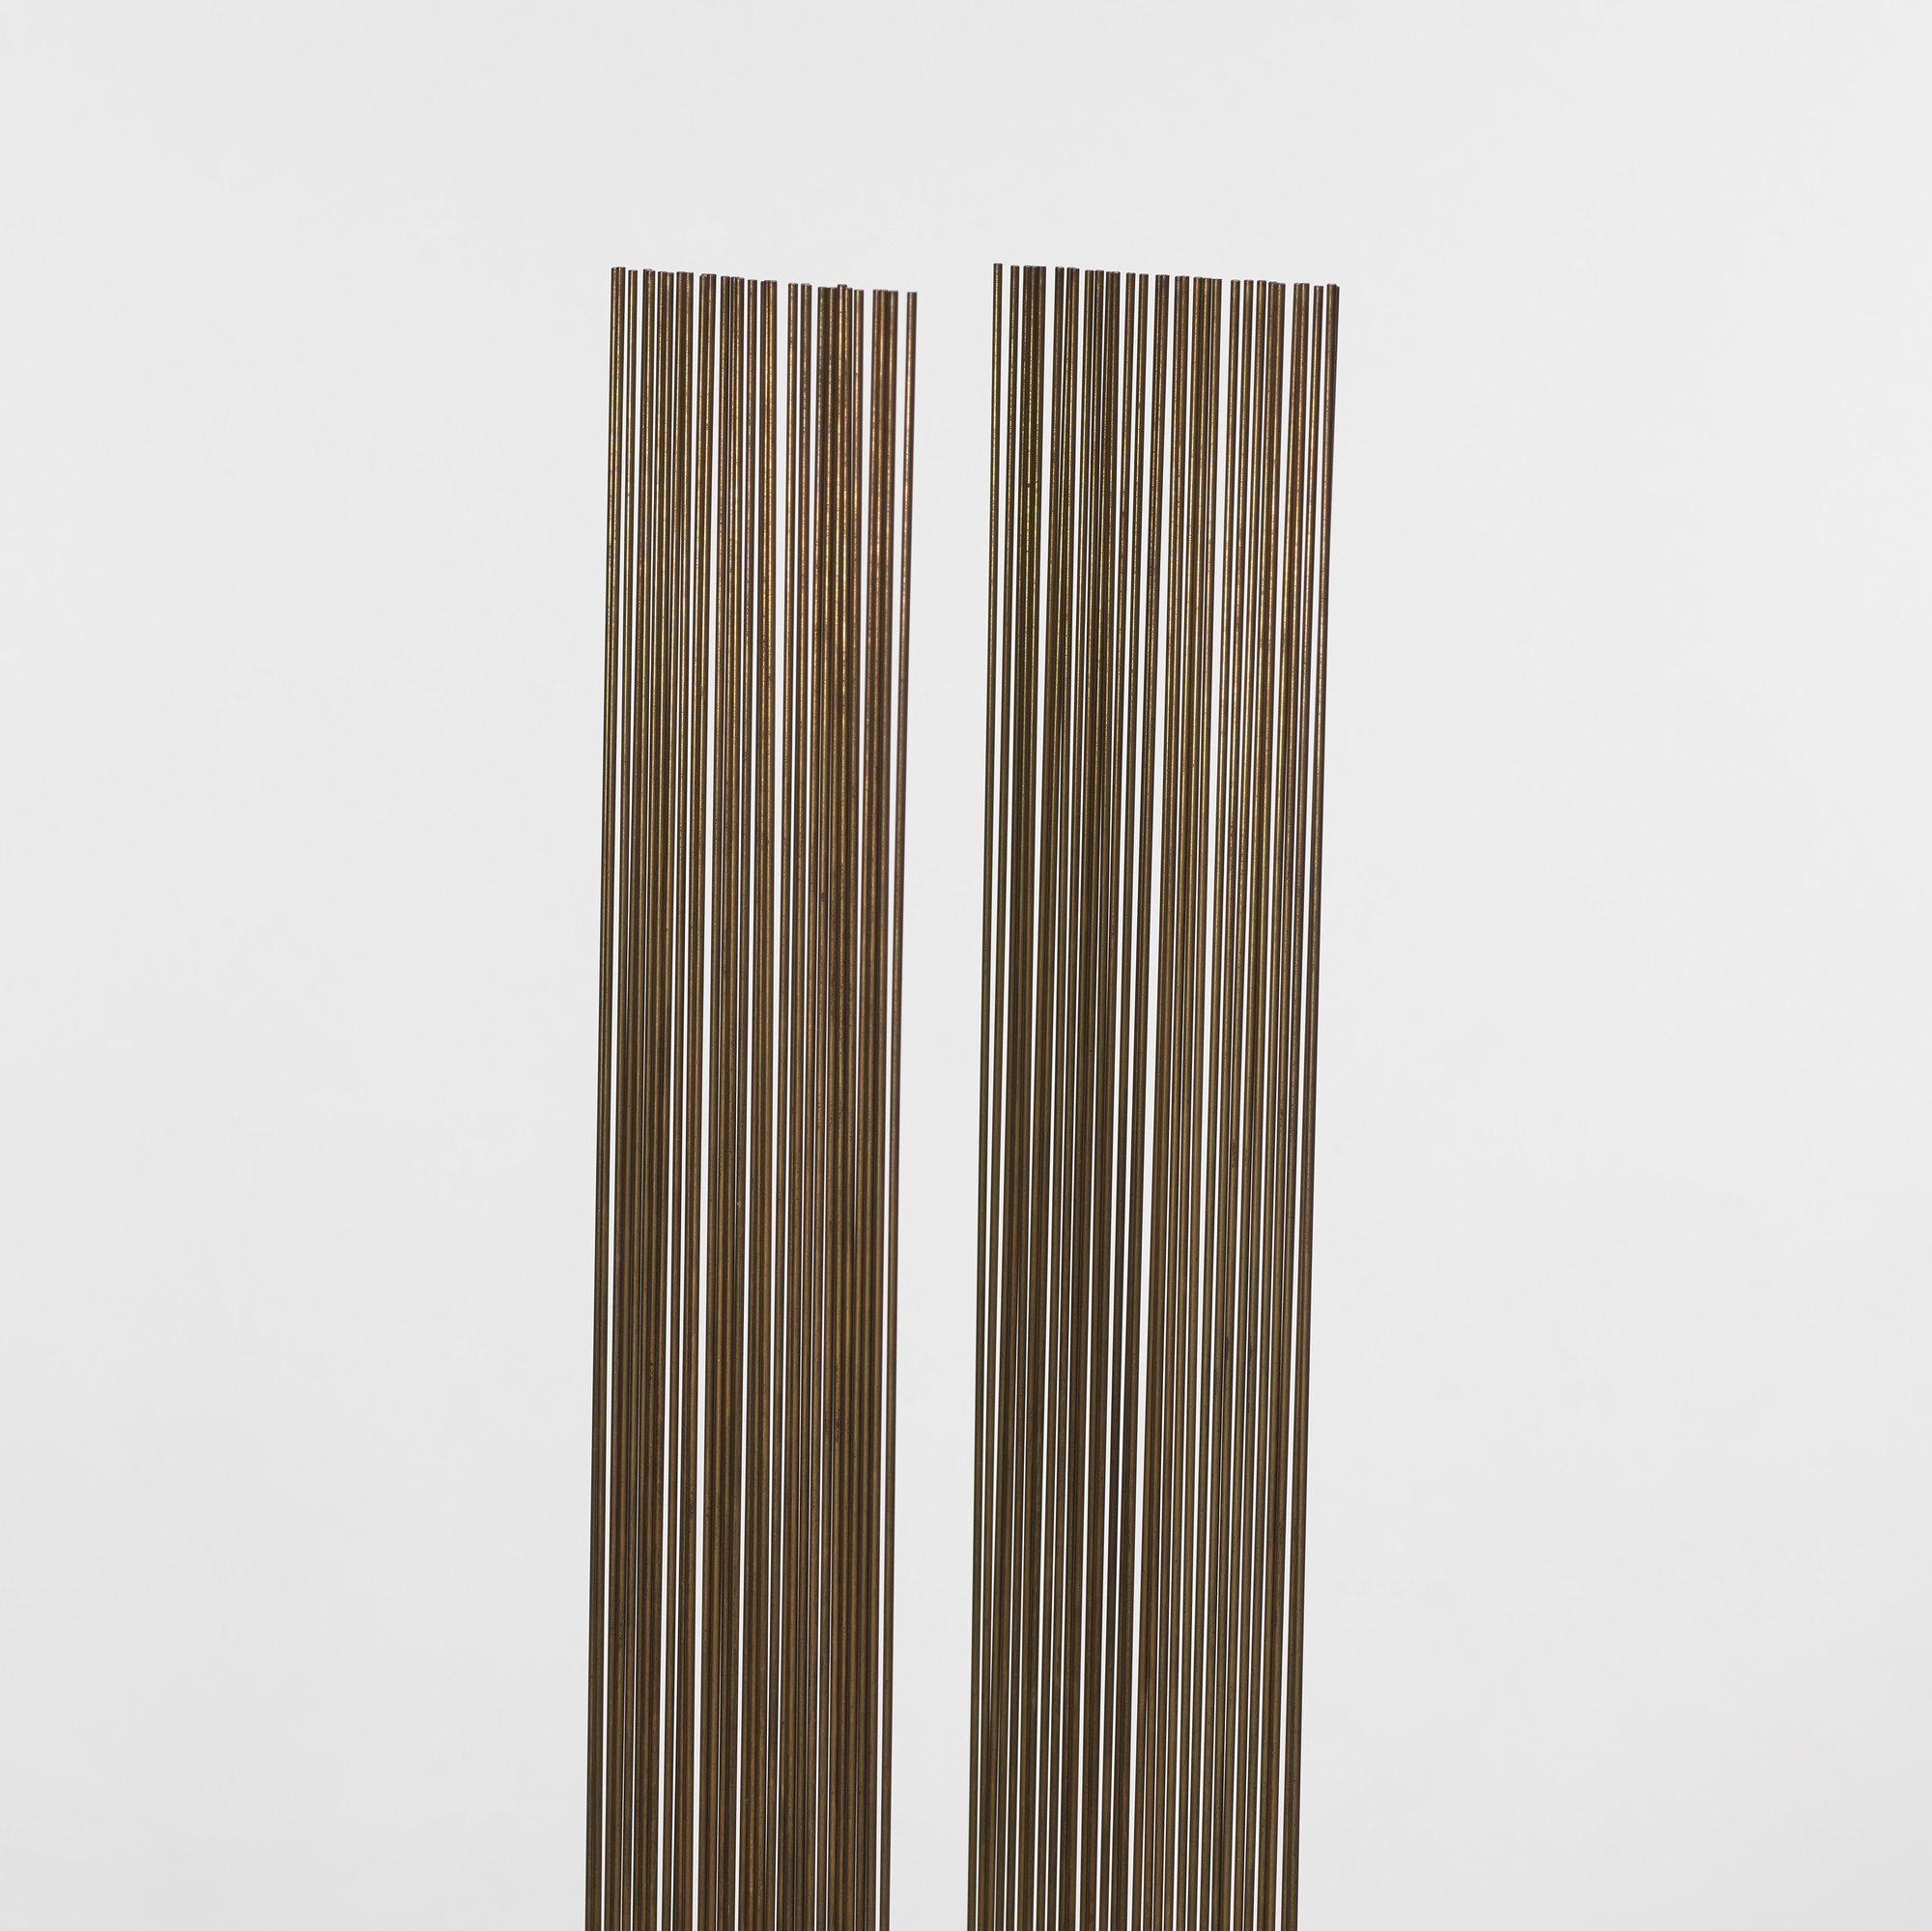 134: Harry Bertoia / Untitled (Sonambient) from the Standard Oil Commission (3 of 4)